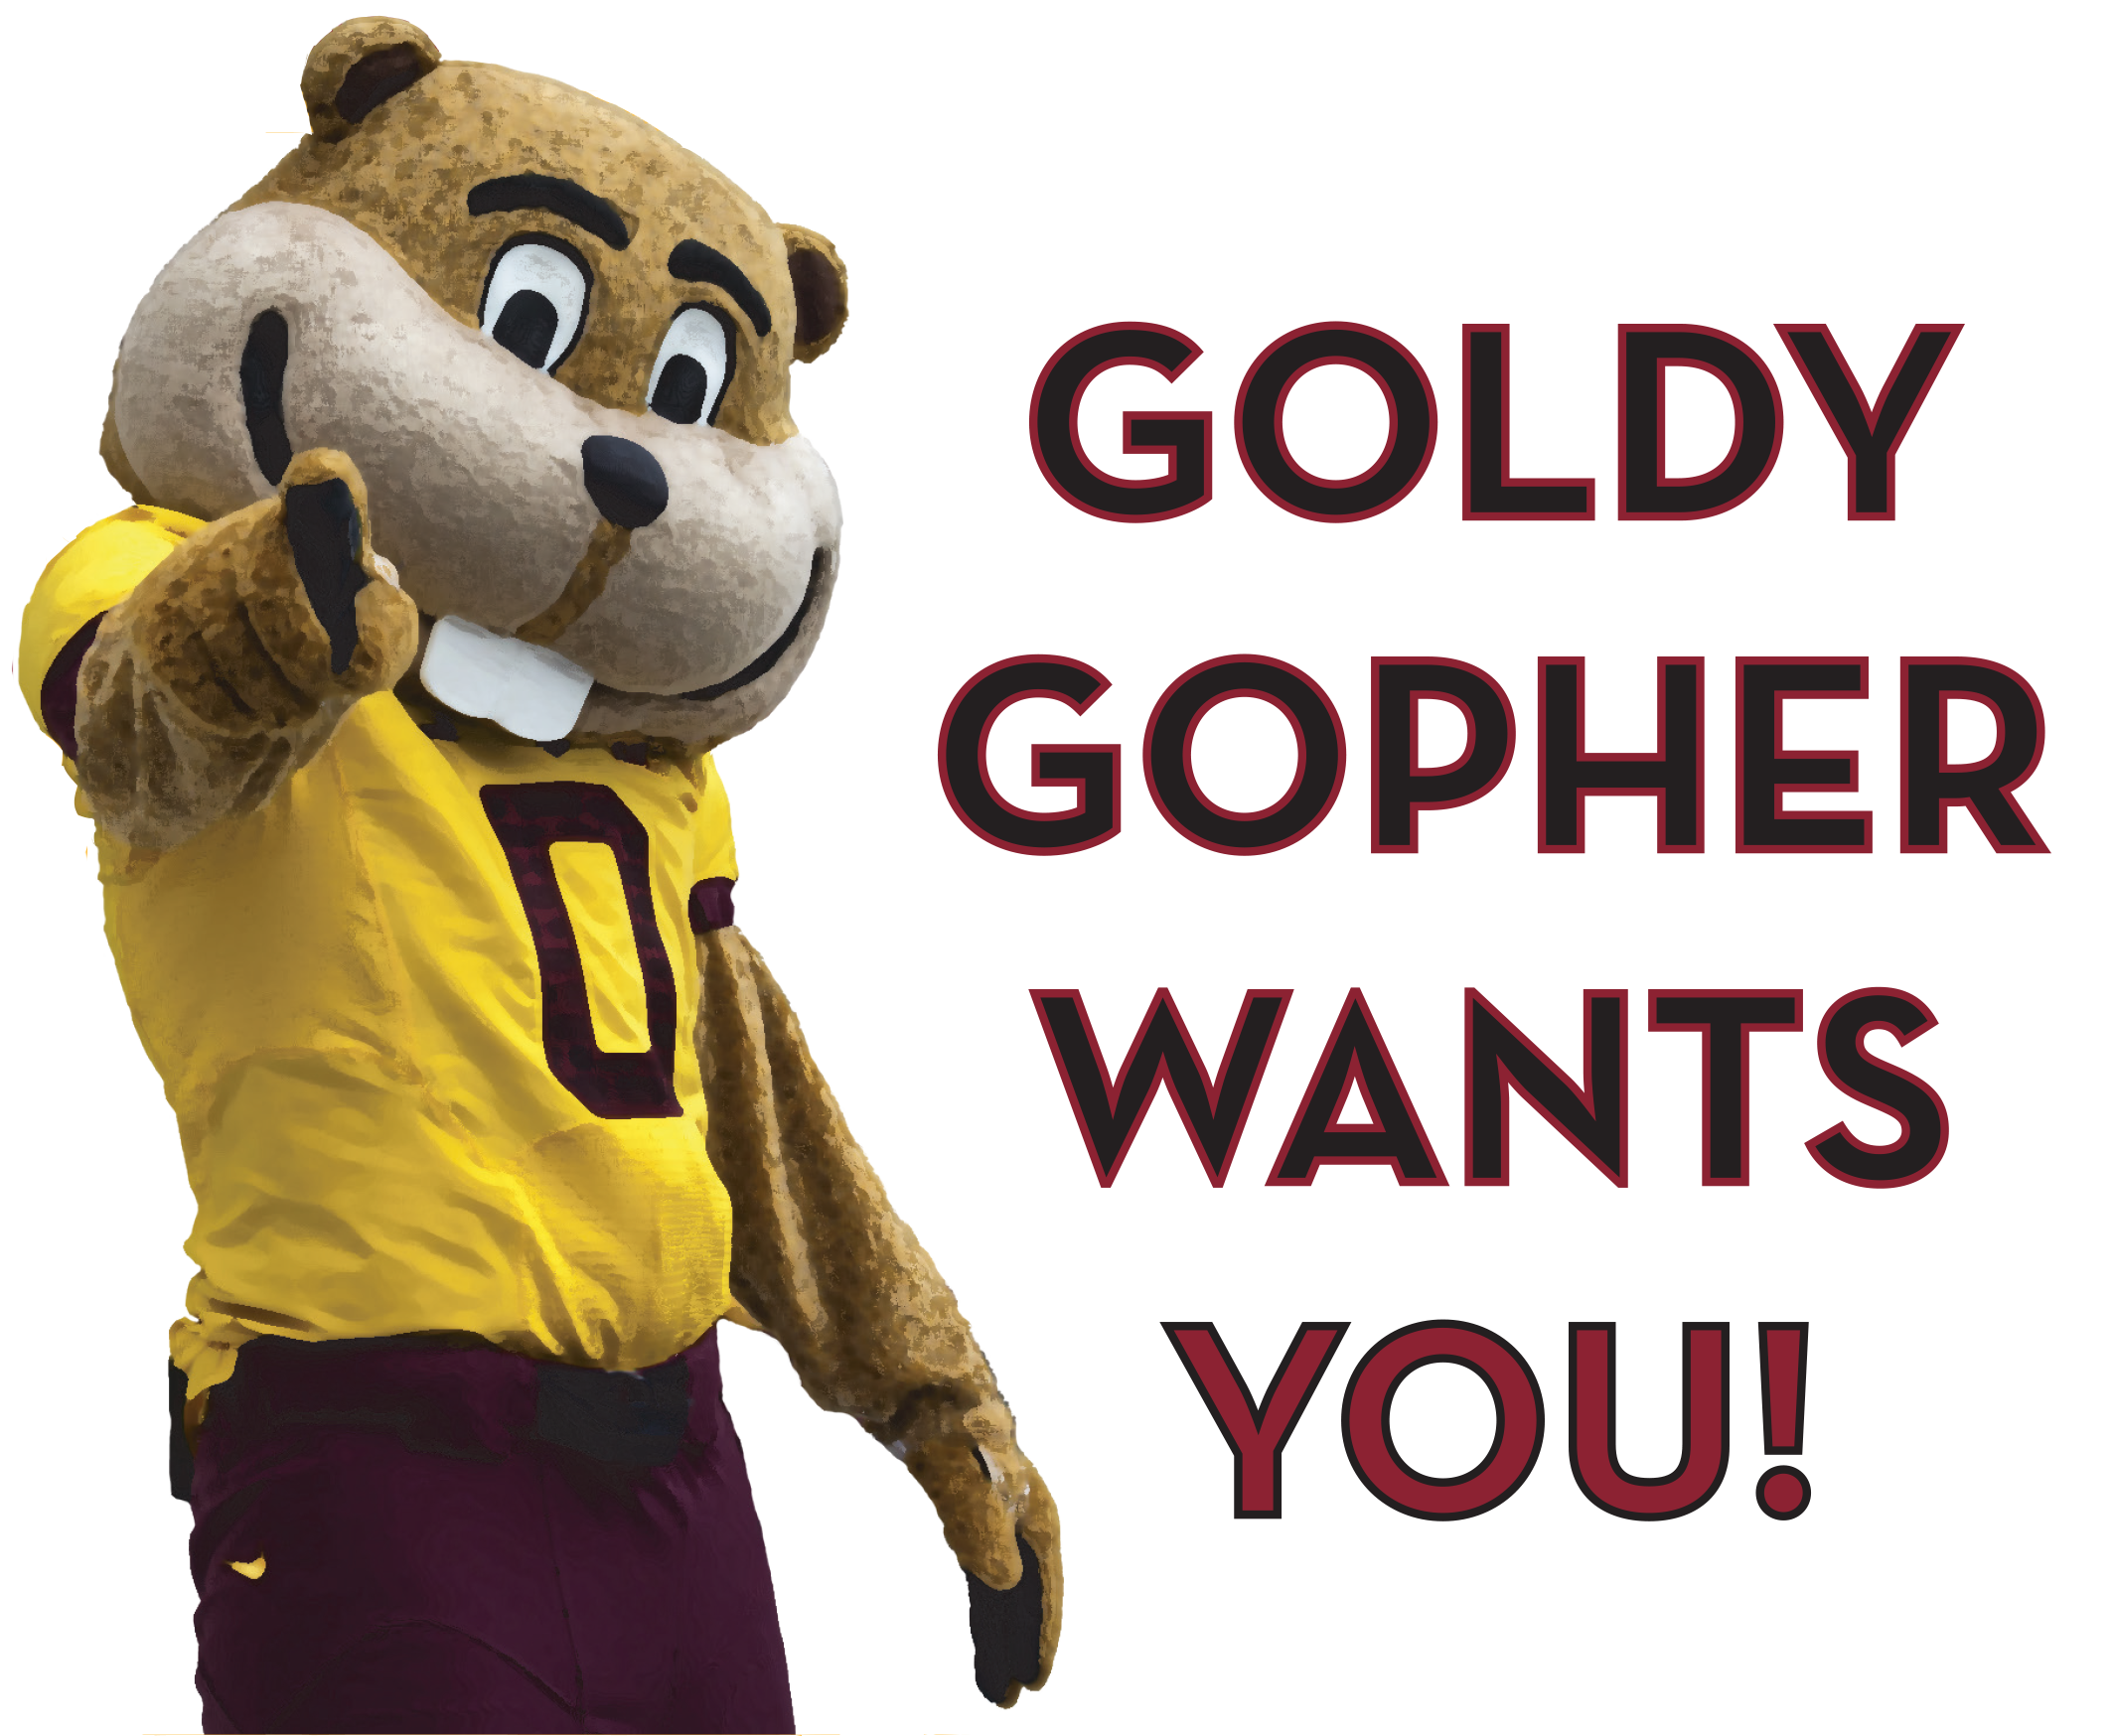 goldy gopher wants you